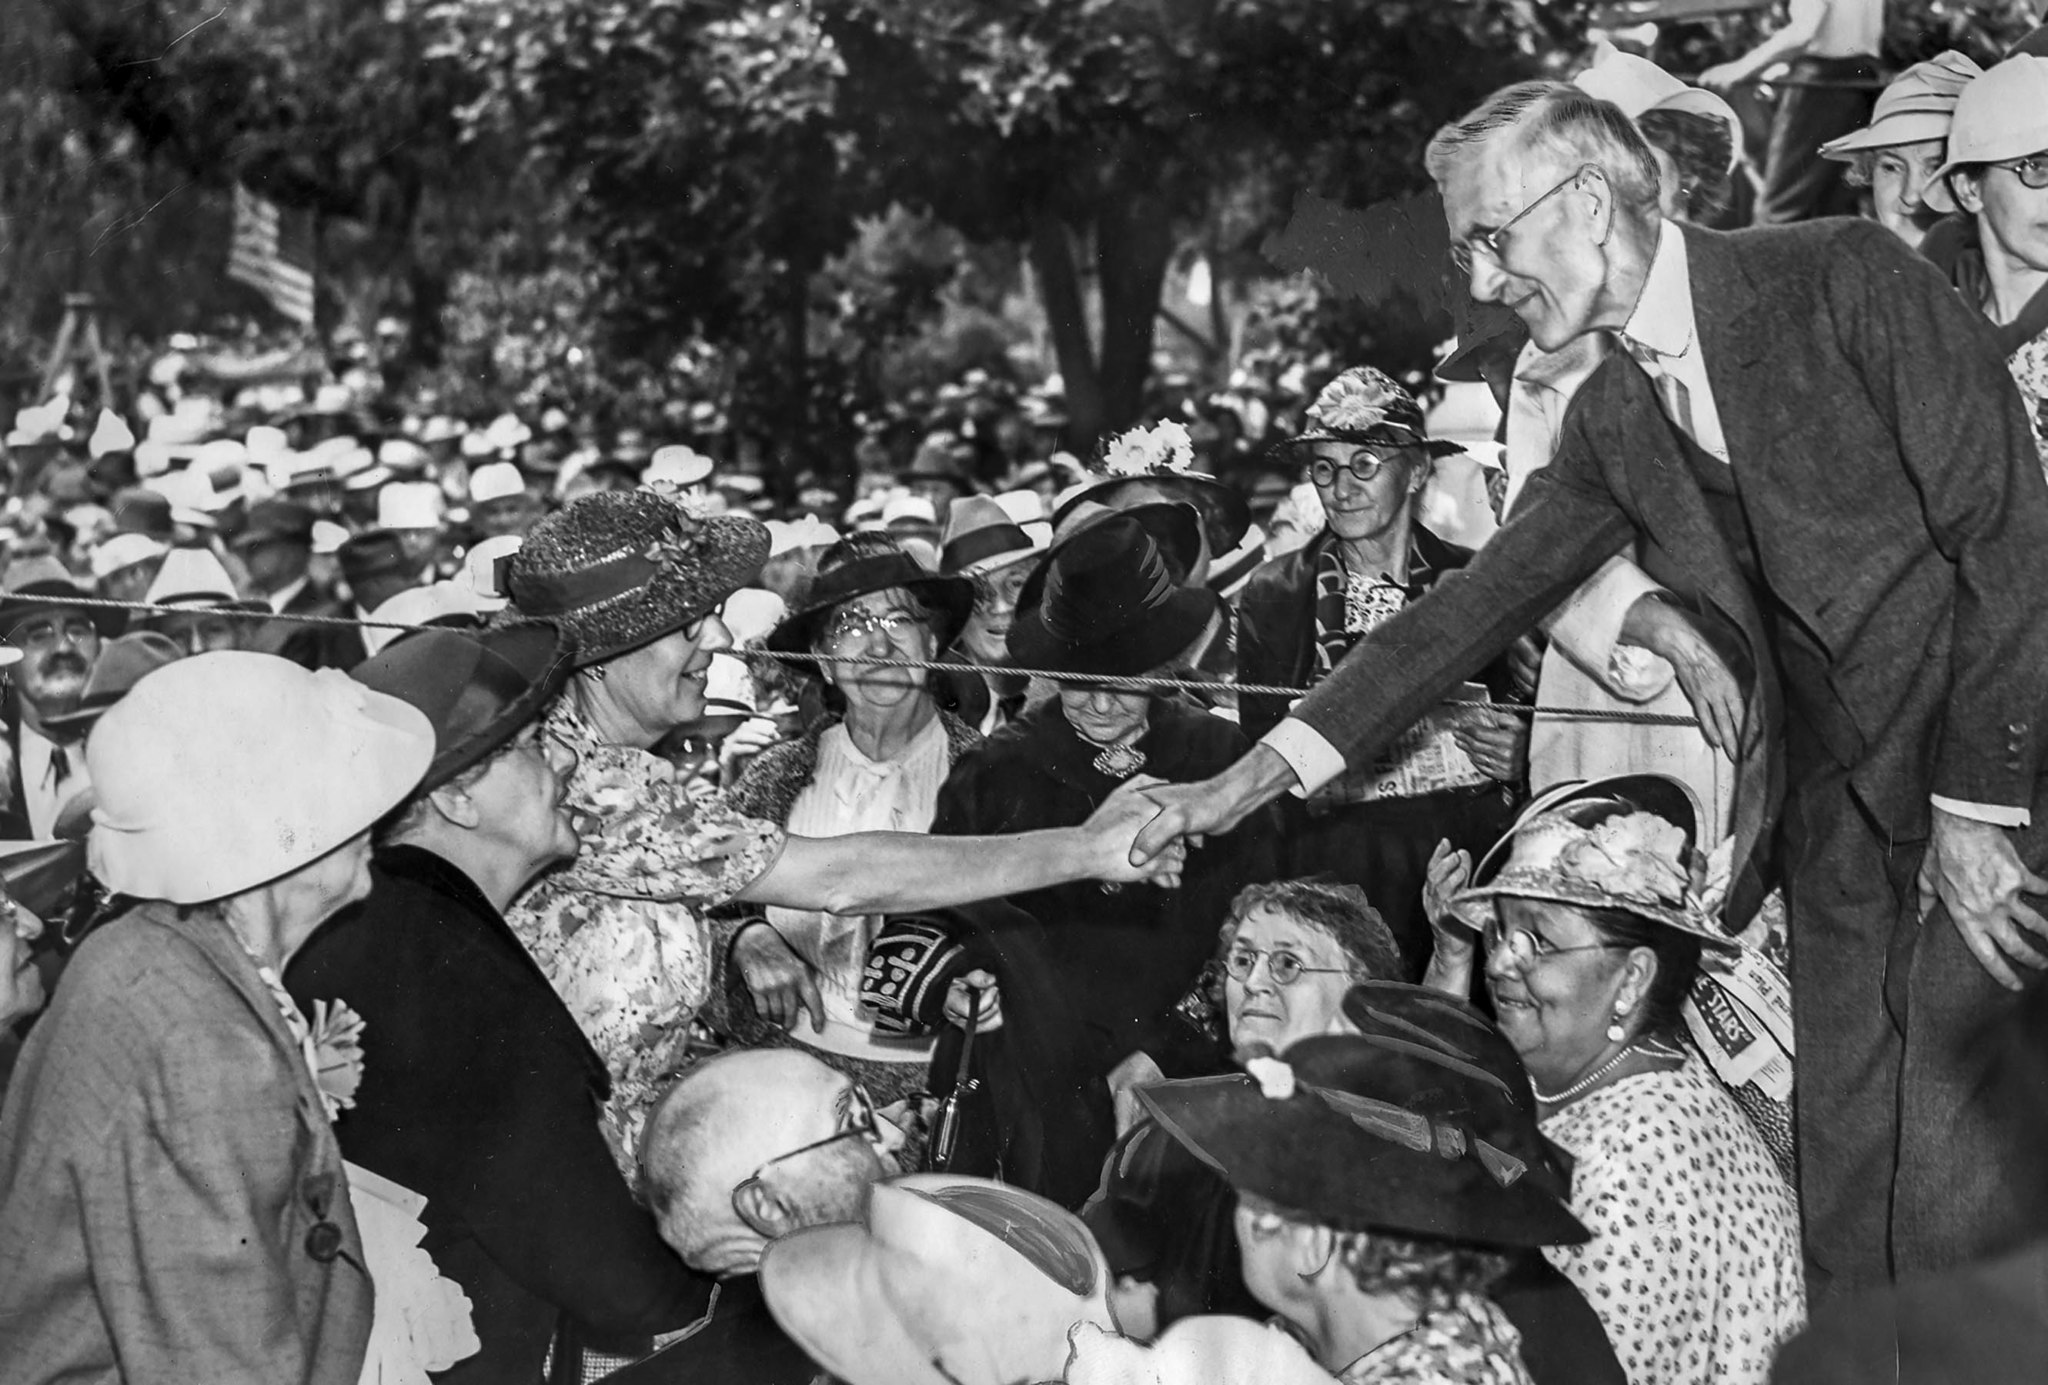 June 23, 1938: Dr. Francis E. Towsend, founder of pension plan, shakes hands with followers at Bixby